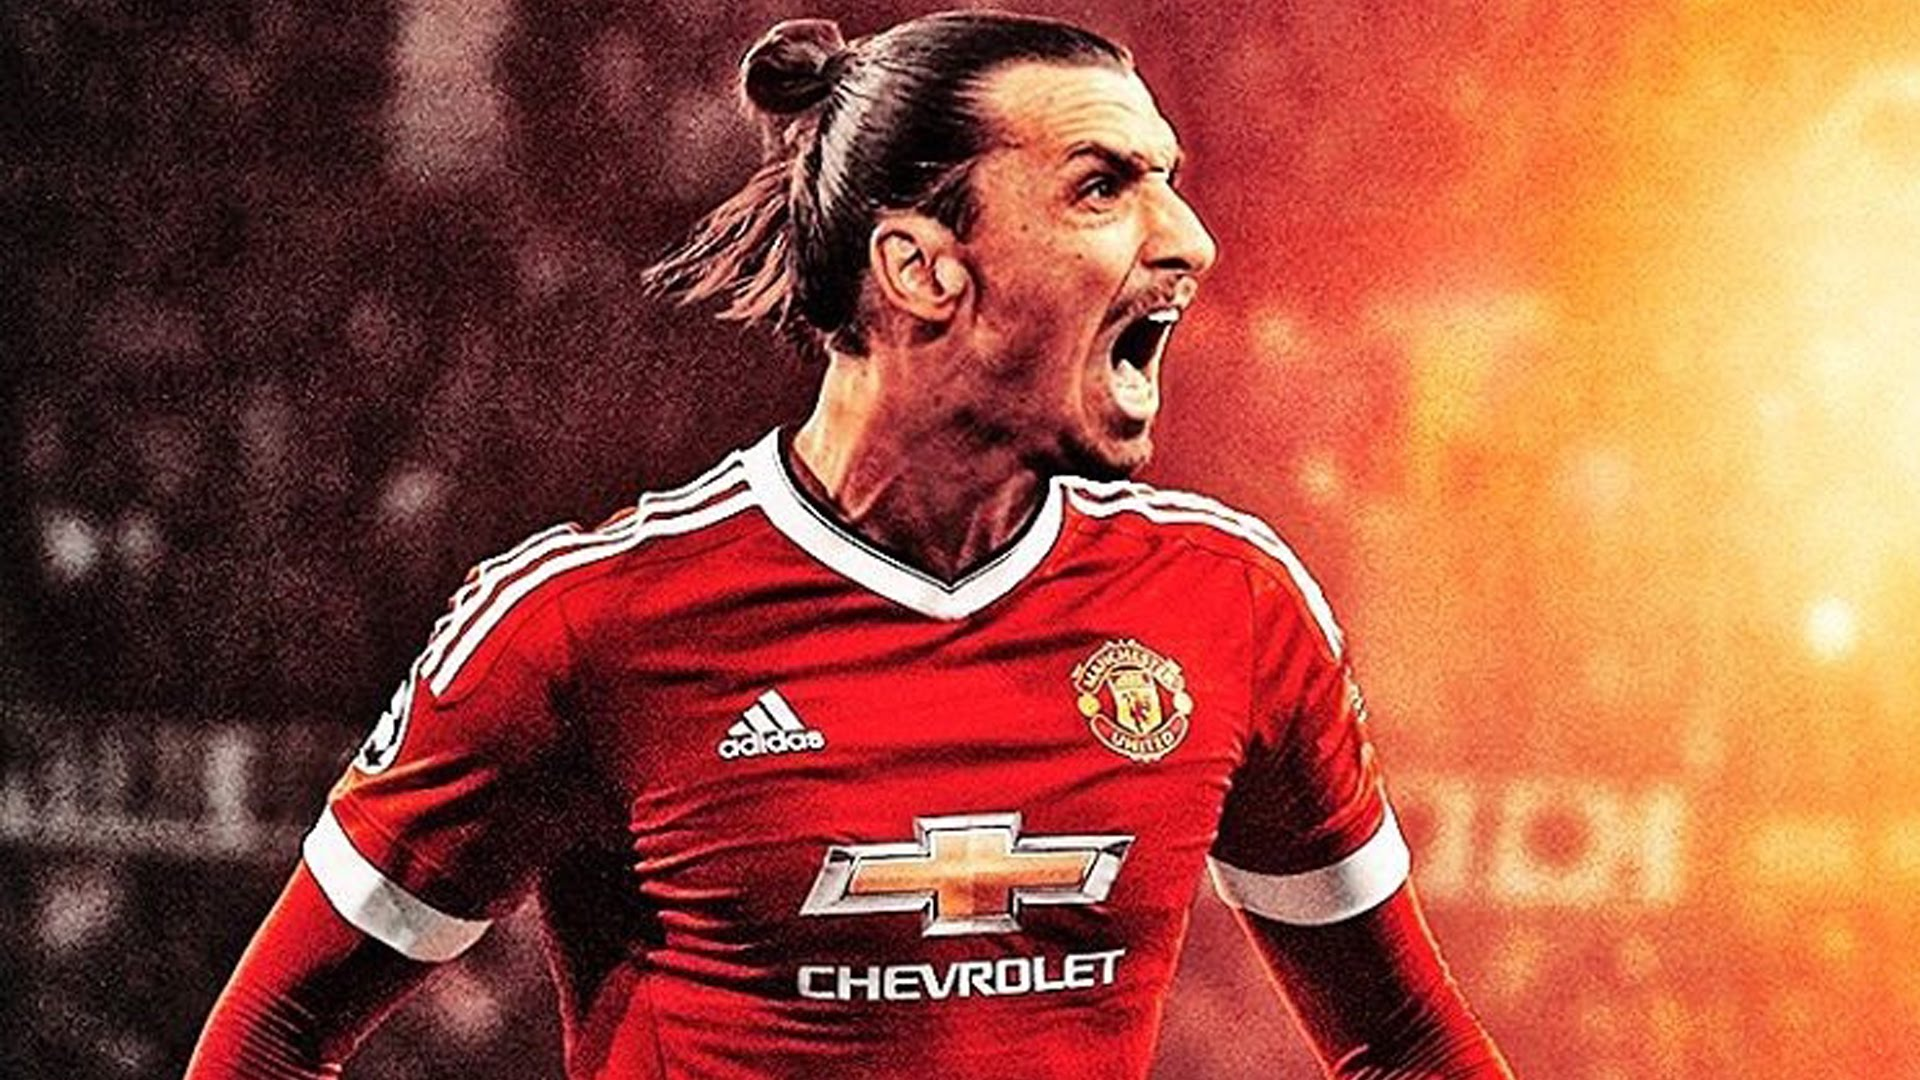 Ibrahimovic vs Cantona: Re di Manchester? La risposta è super!